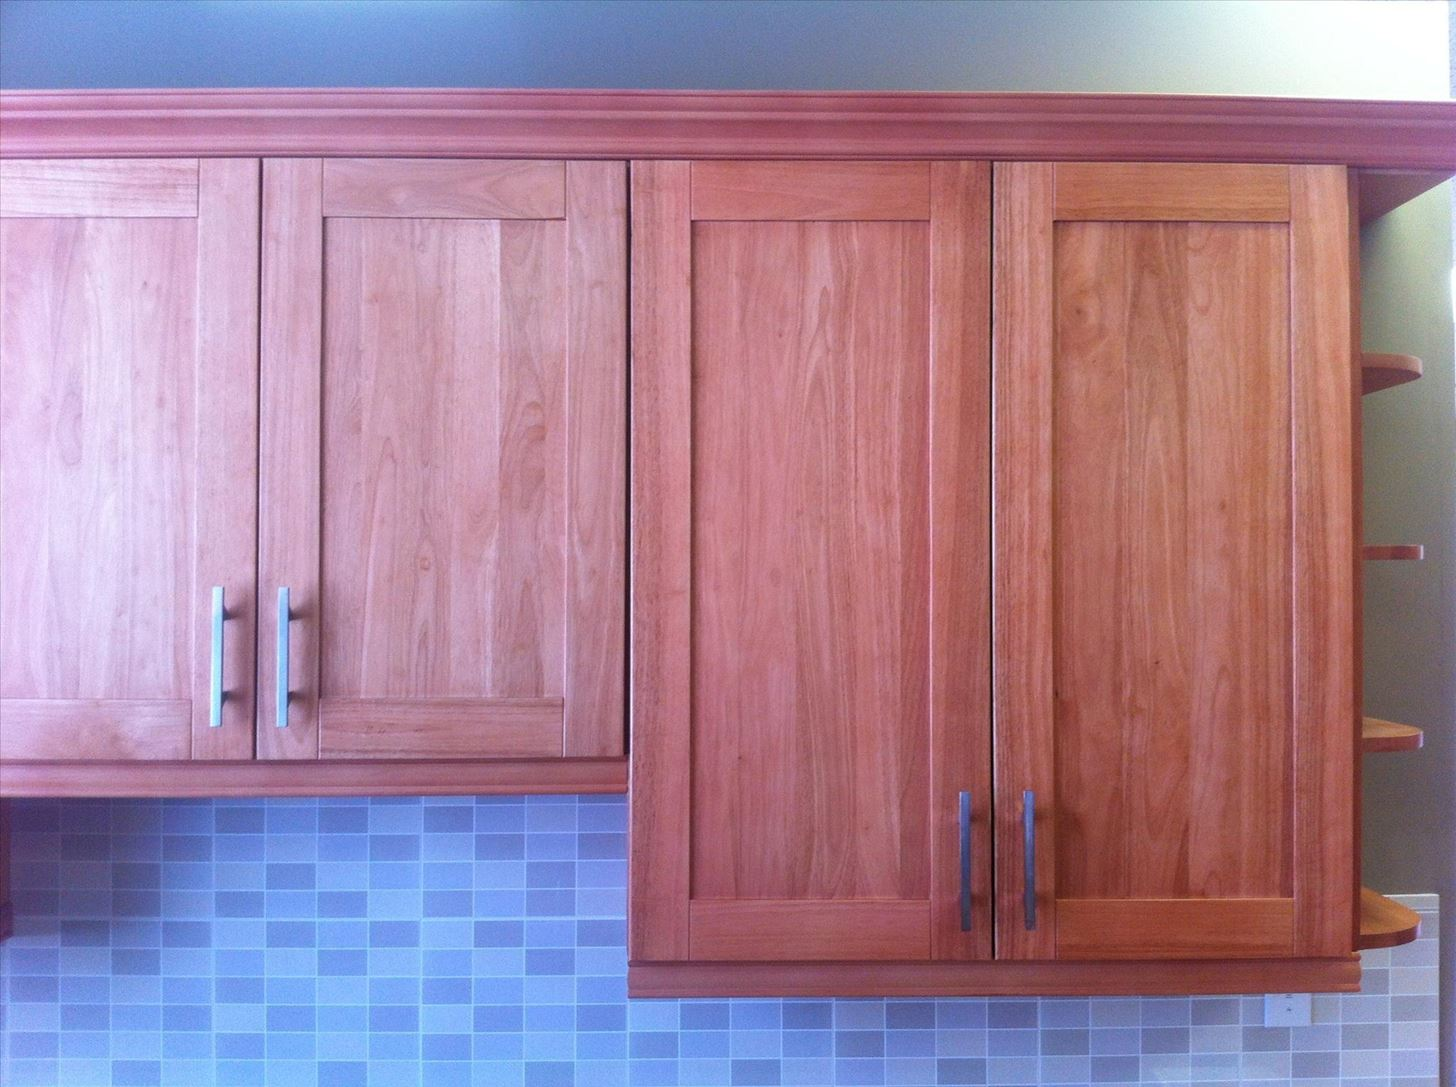 How To Adjust The Alignment Of Cabinet Doors Construction & Repair